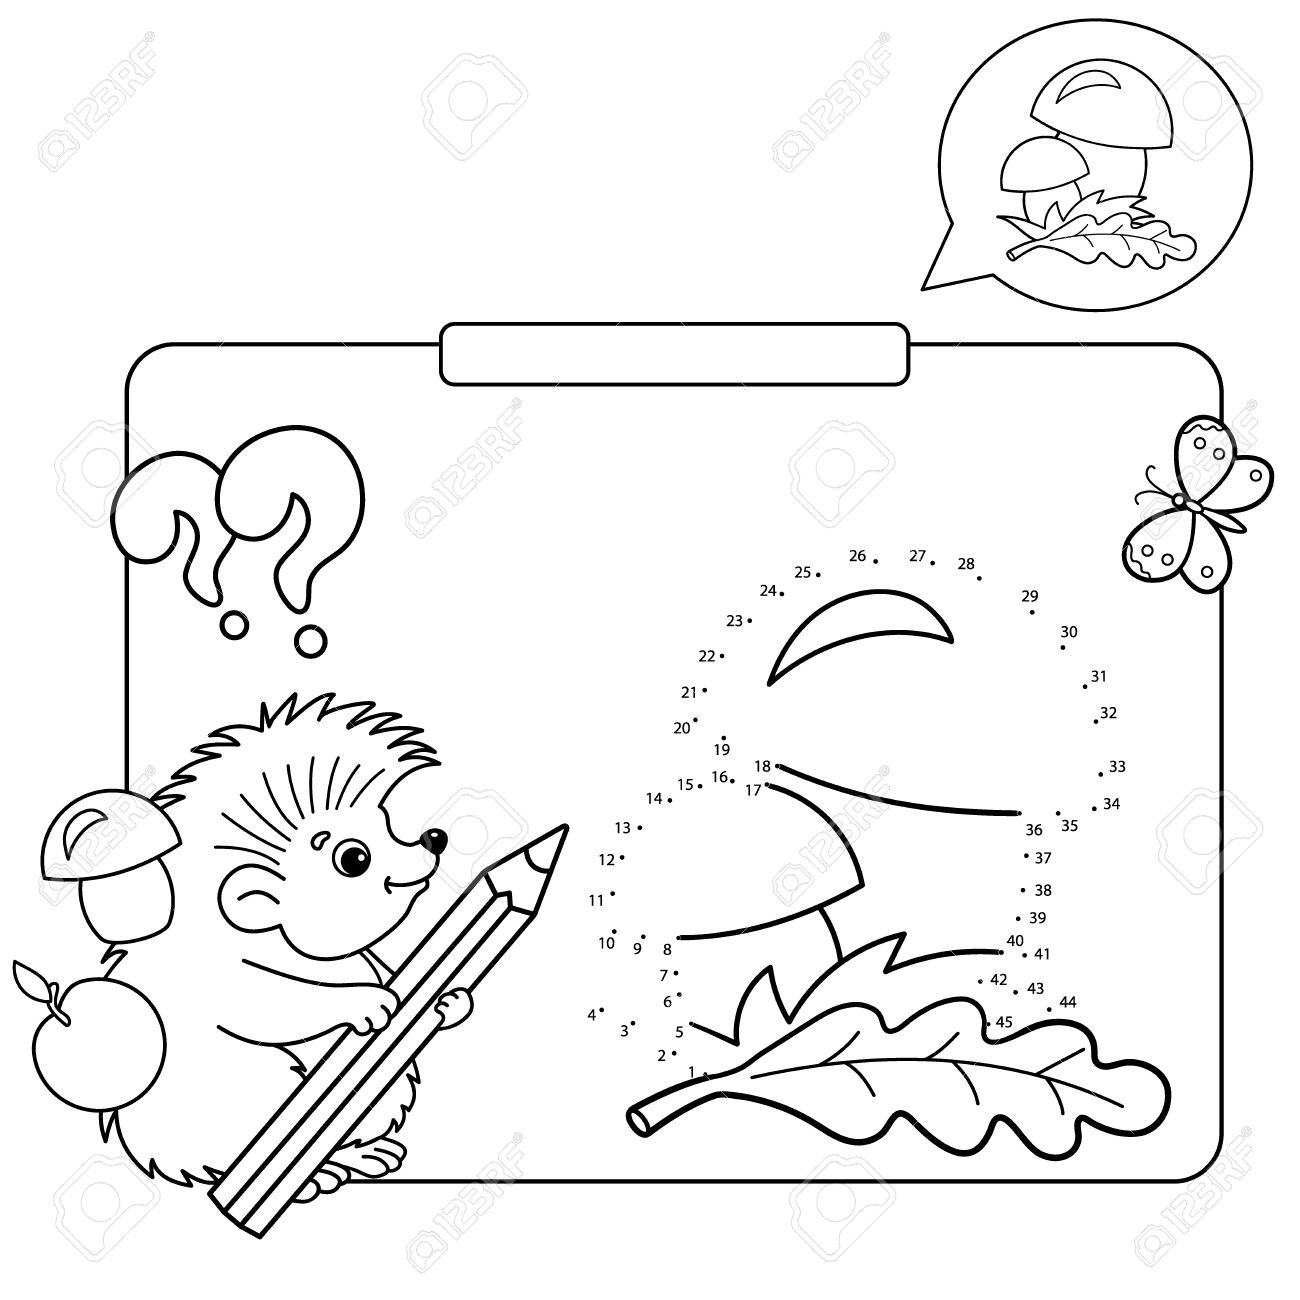 Uncategorized Number 11 Coloring Page number 11 coloring page 100 images color instant gry edukacyjne dla dzieci gra liczb grzyby page